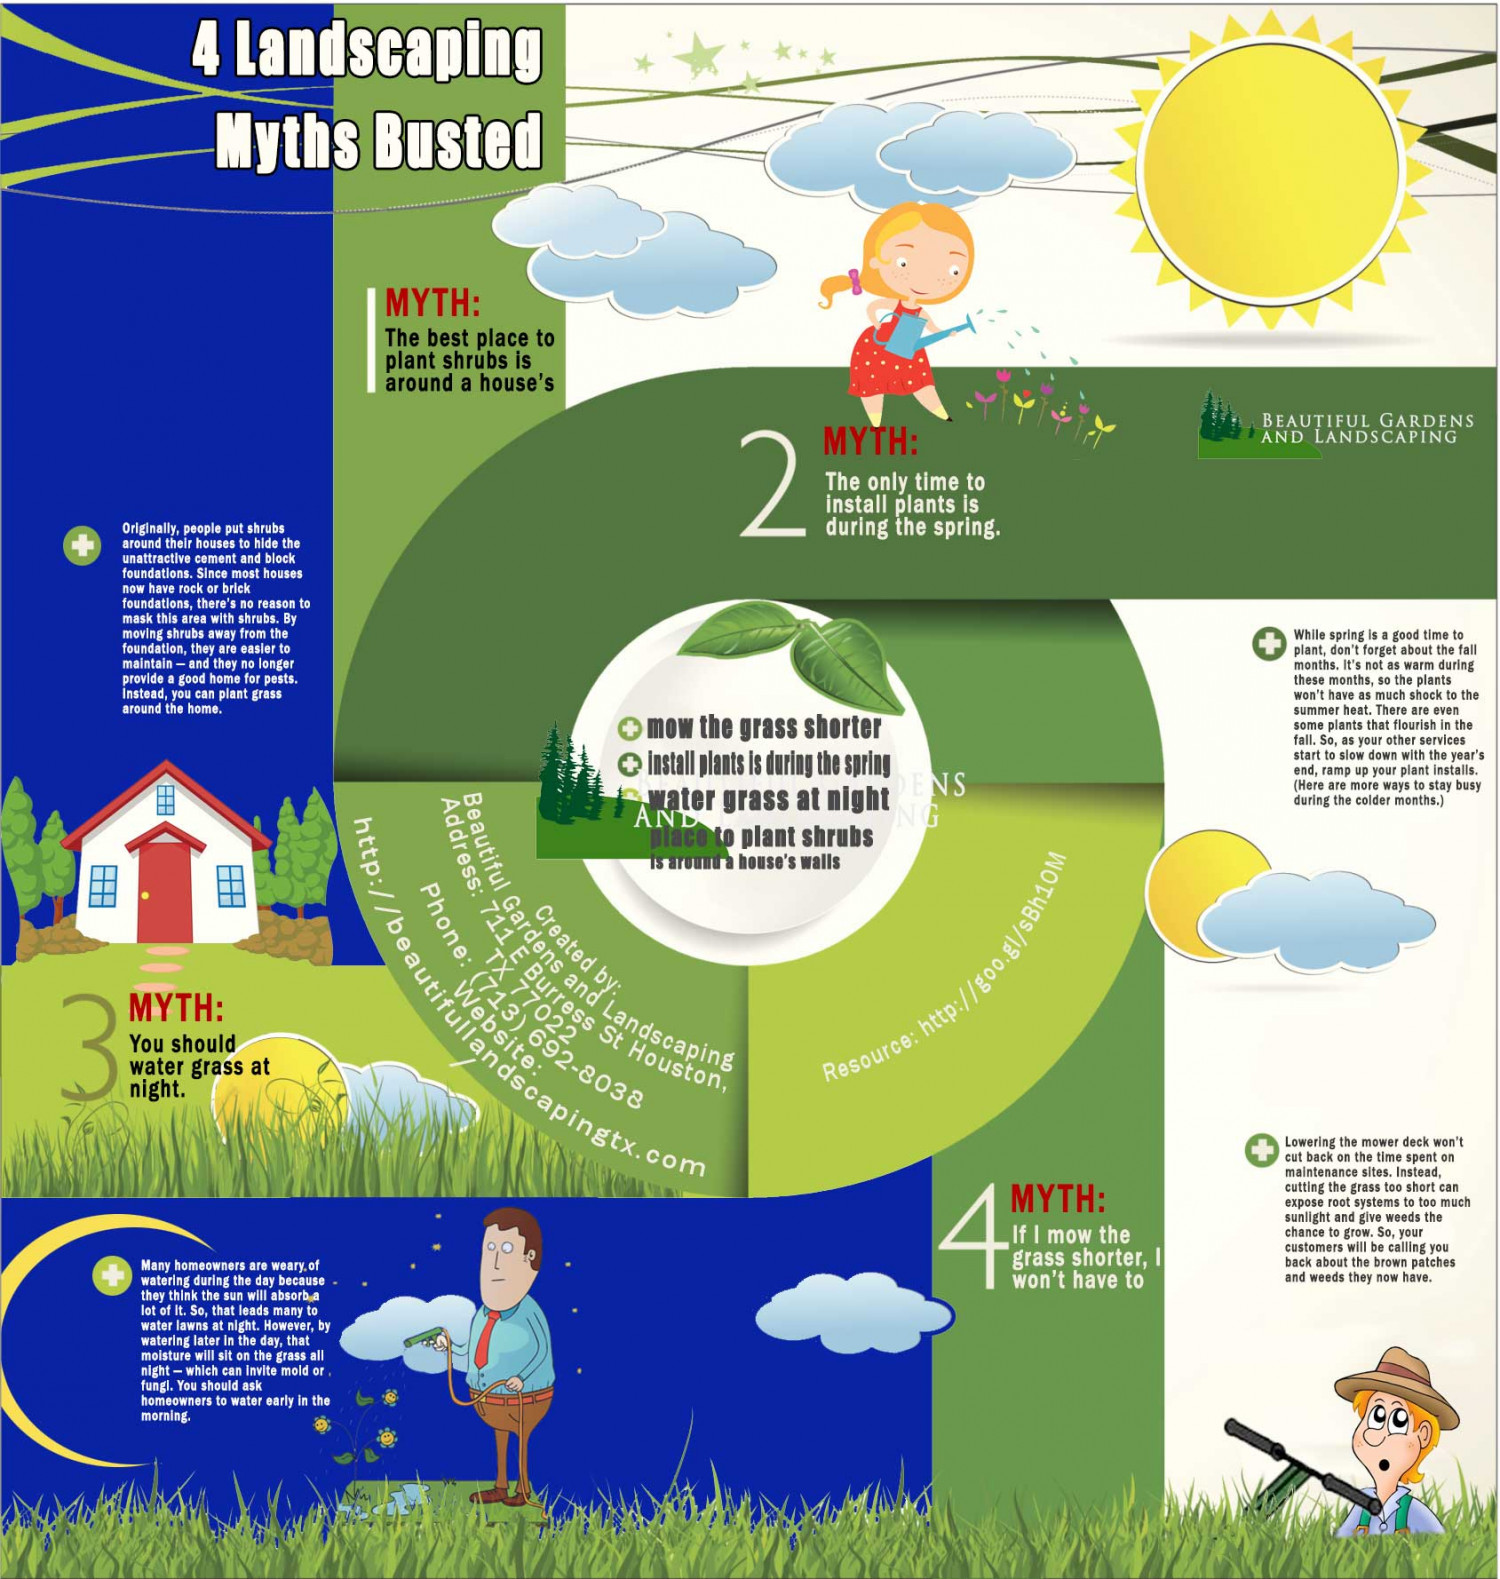 4 Landscaping Myths Busted Infographic